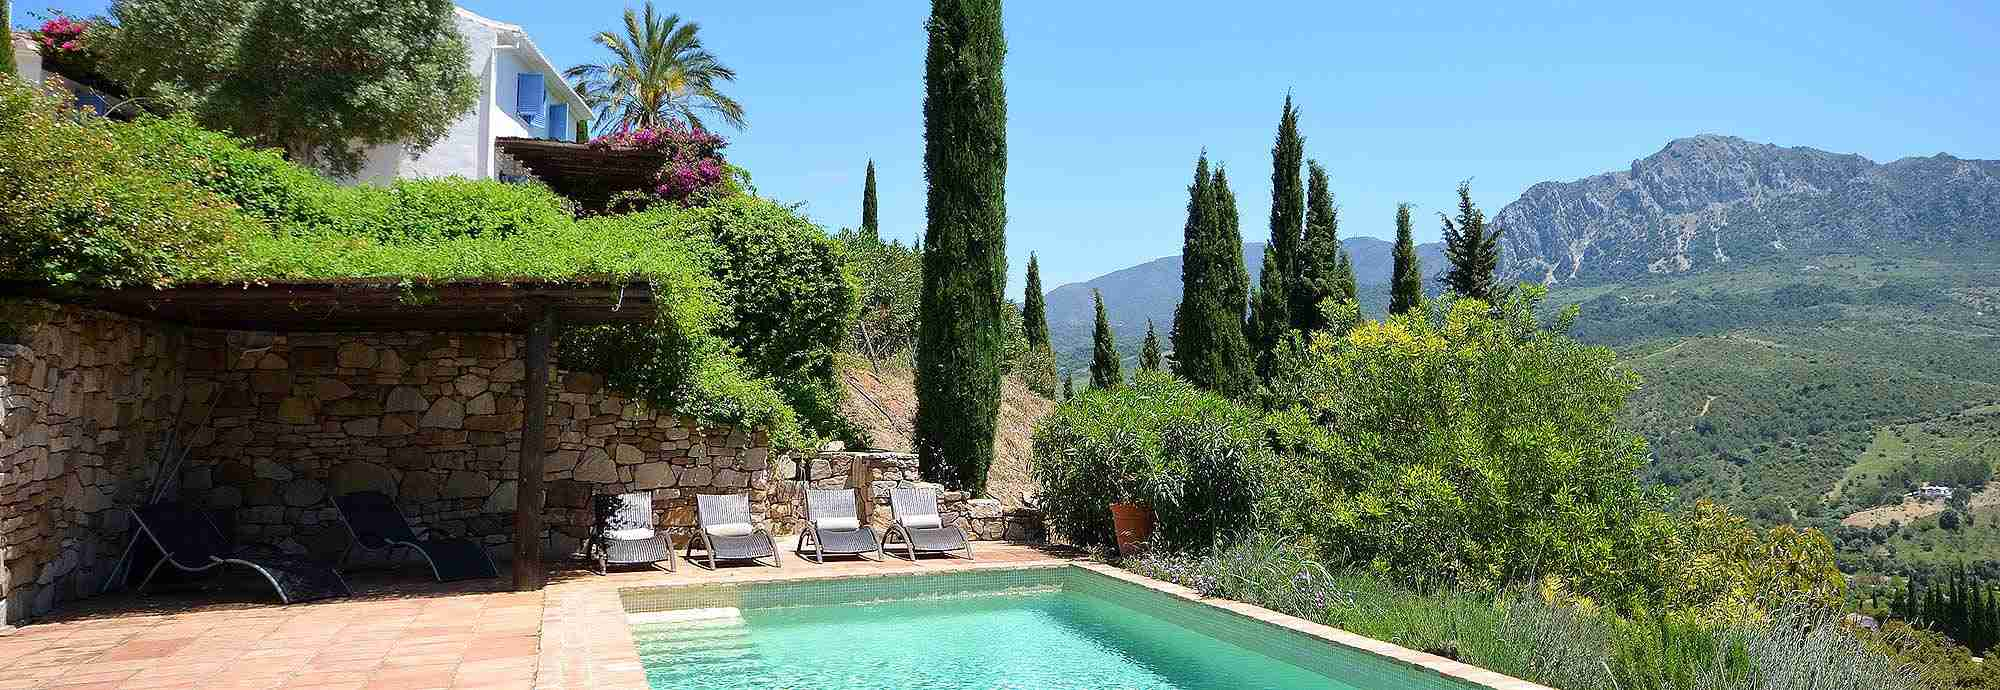 Holiday  Villas in Spain with Pools